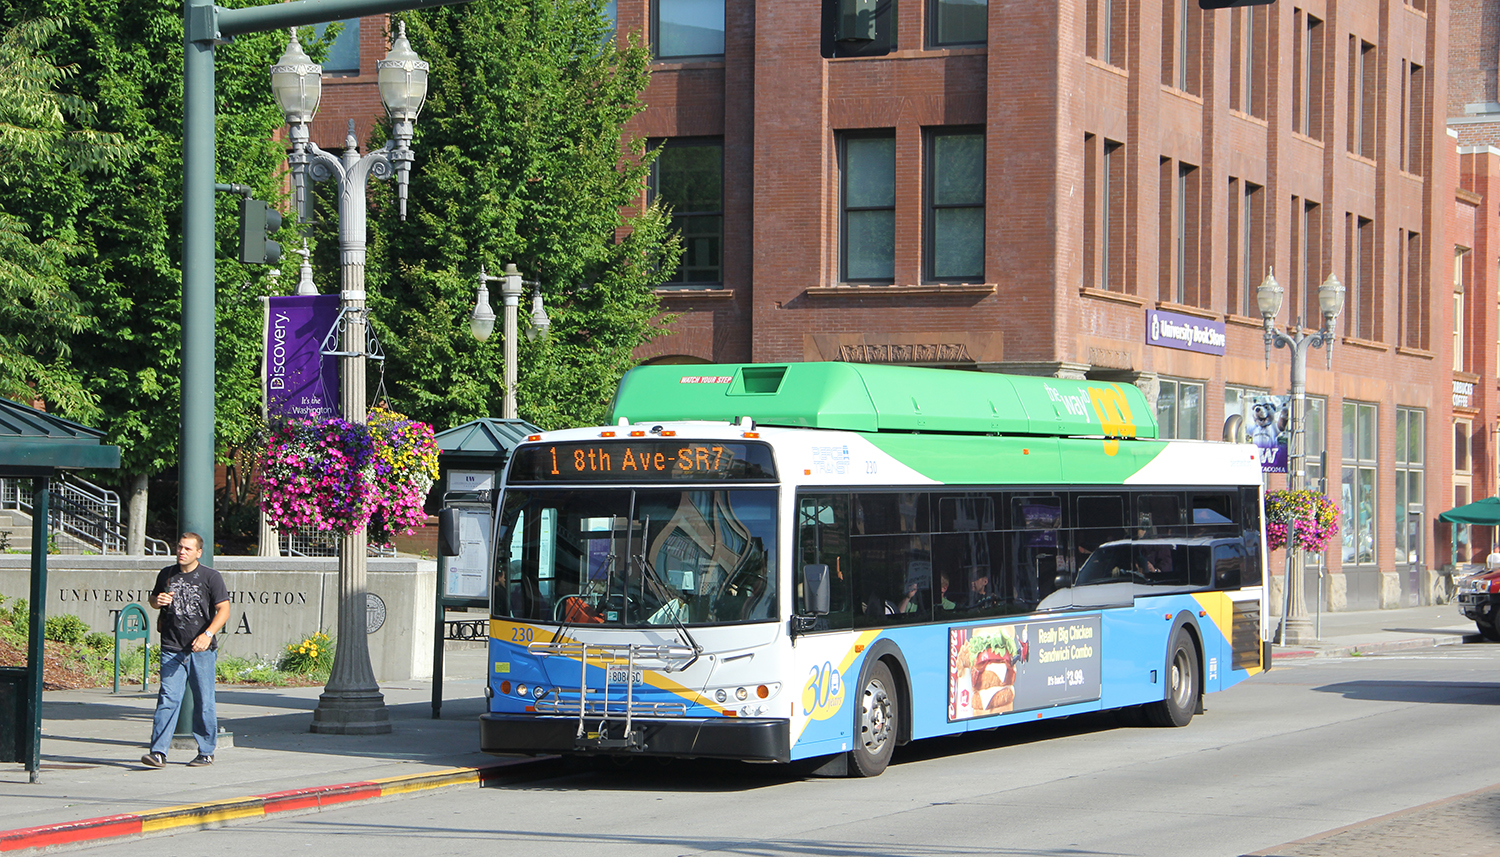 pierce transit to increase weekend service starting september 24